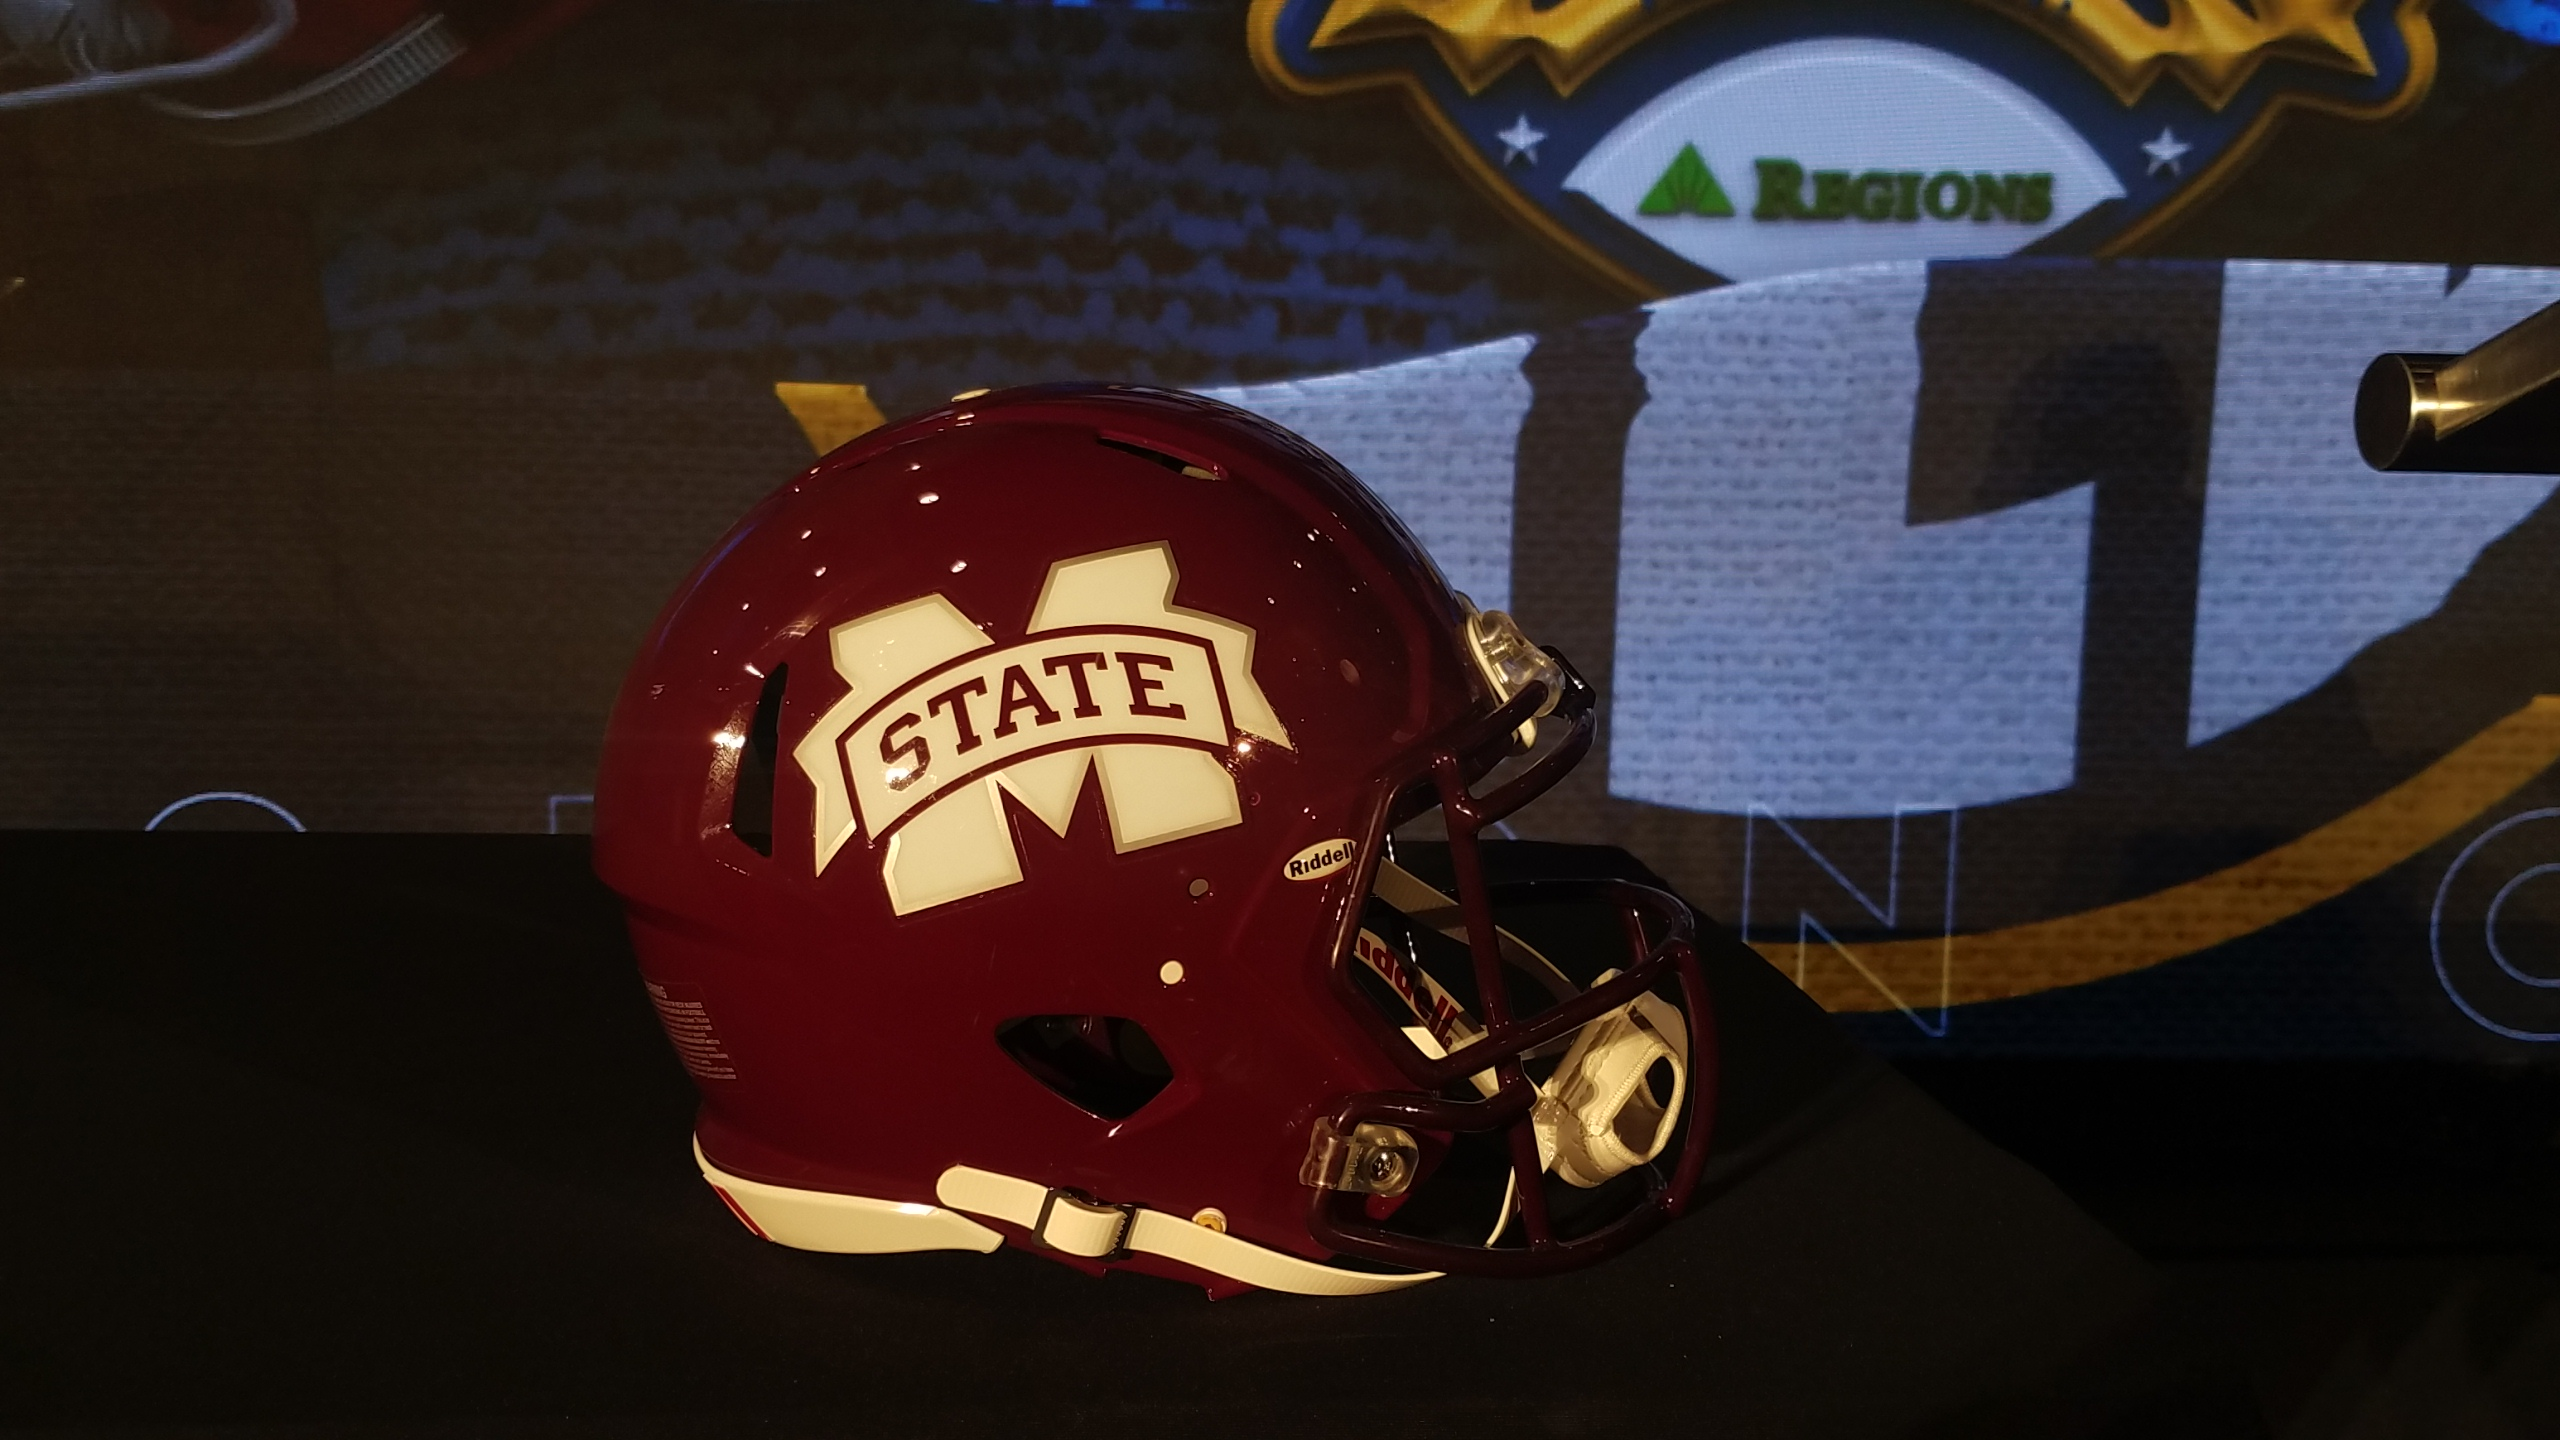 VIDEOS/PODCASTS: Everything from Mississippi State at #SECMD21